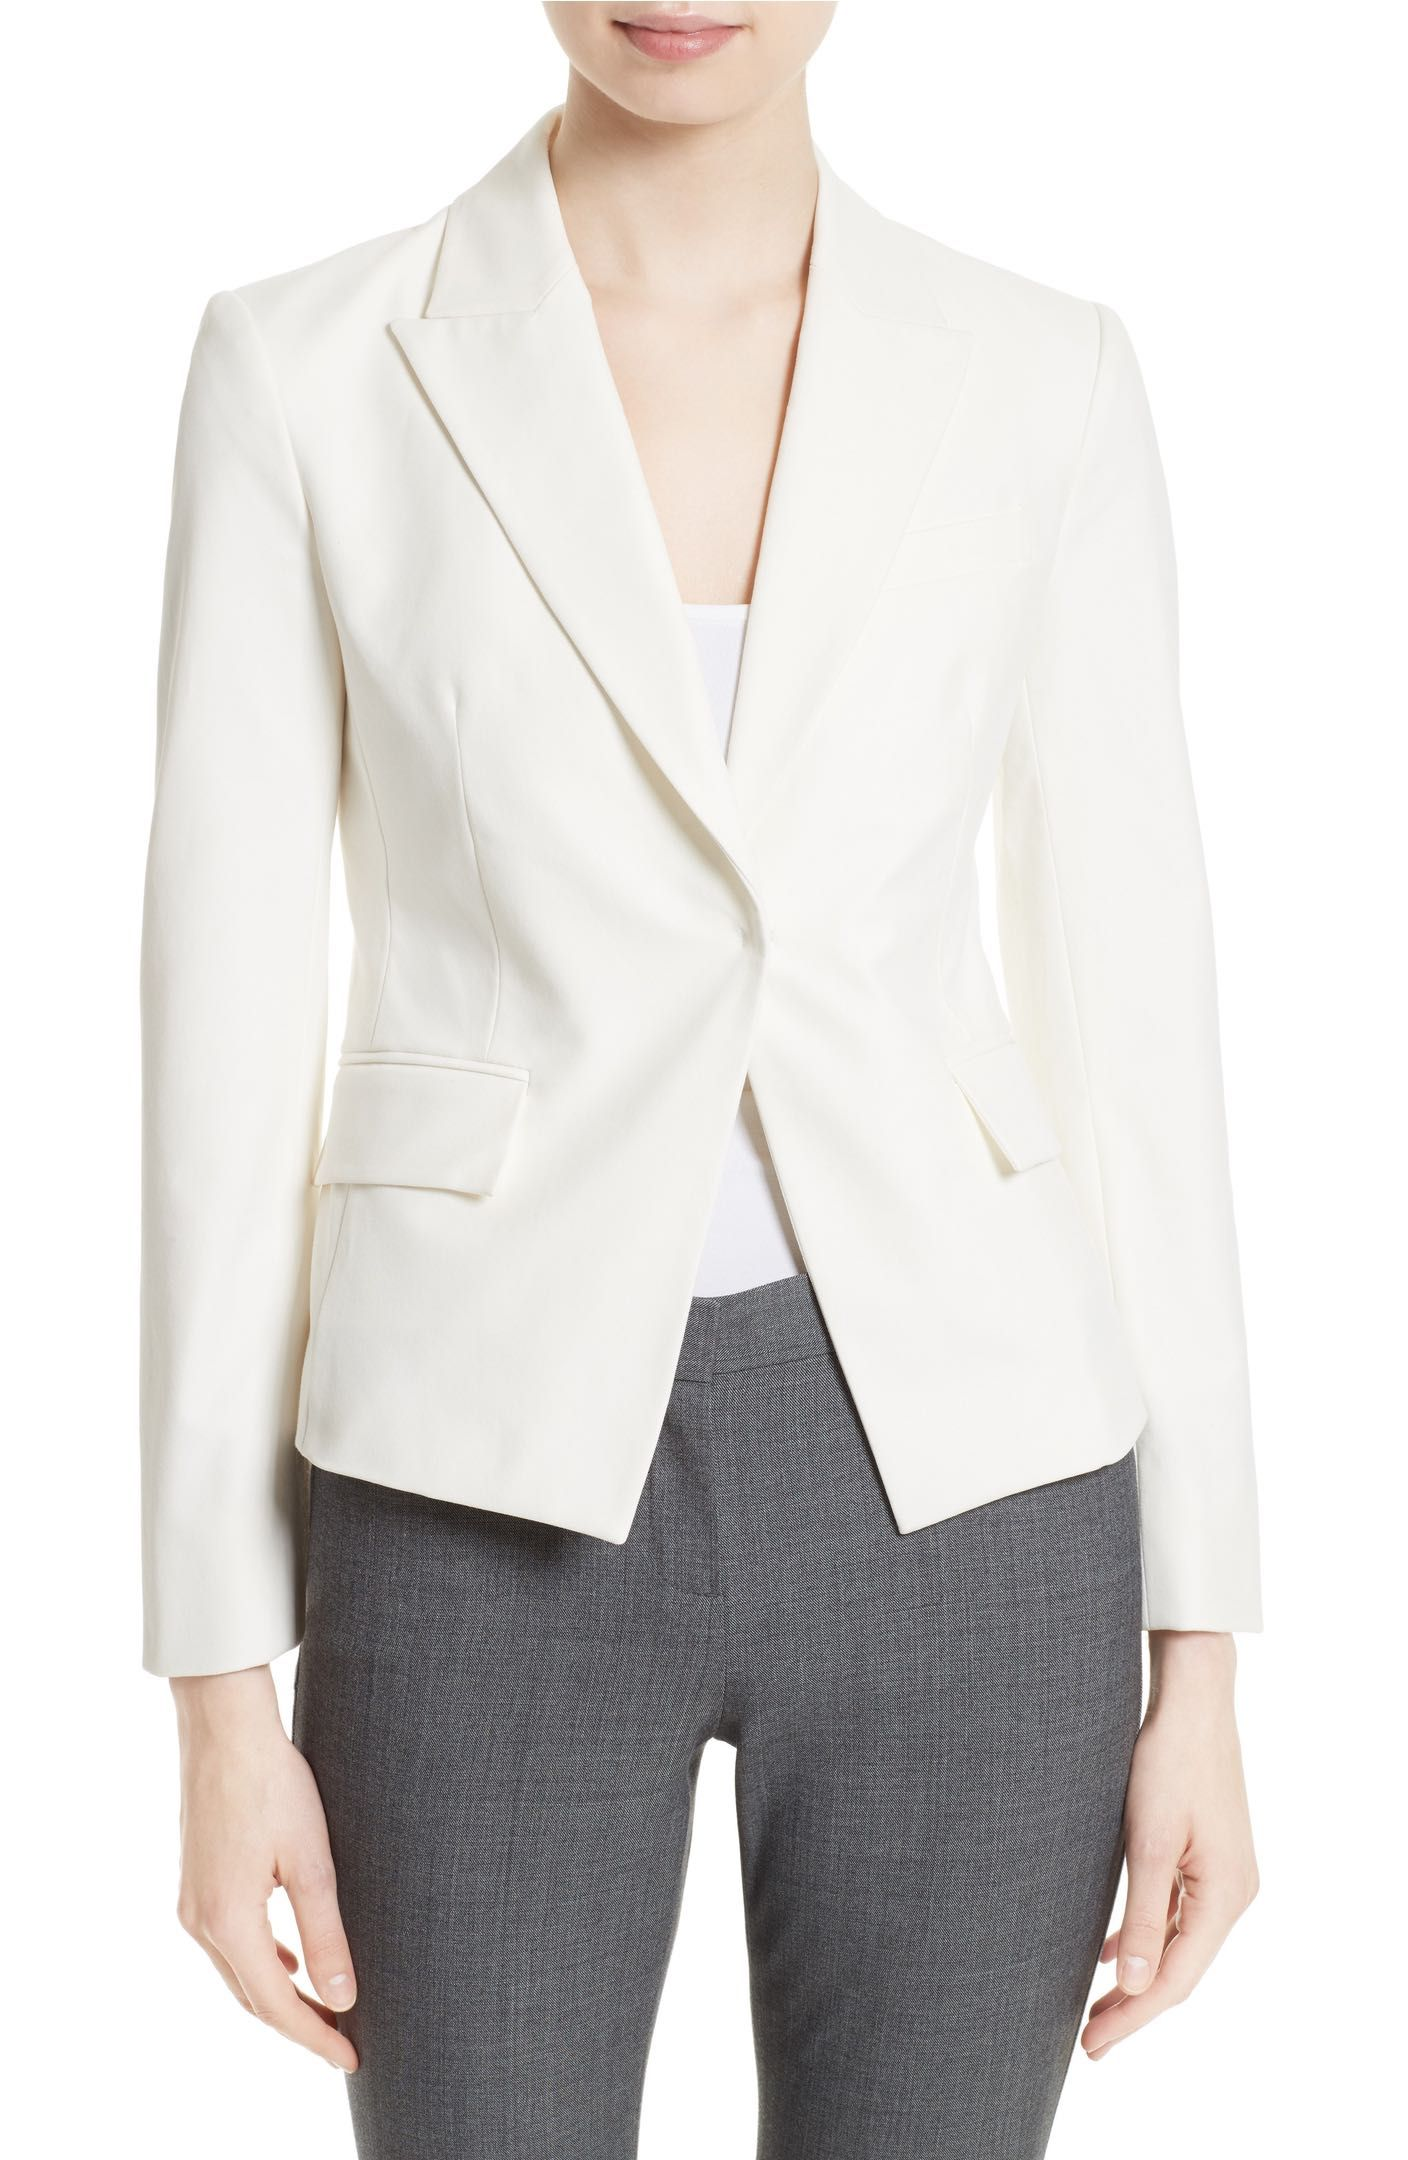 79a2c3b6b8e9 Theory - Brince Approach 2 Jacket in new ivory | Starting in size 00 | A  cutaway front with a hidden-button closure and peak lapels brings a clean,  ...